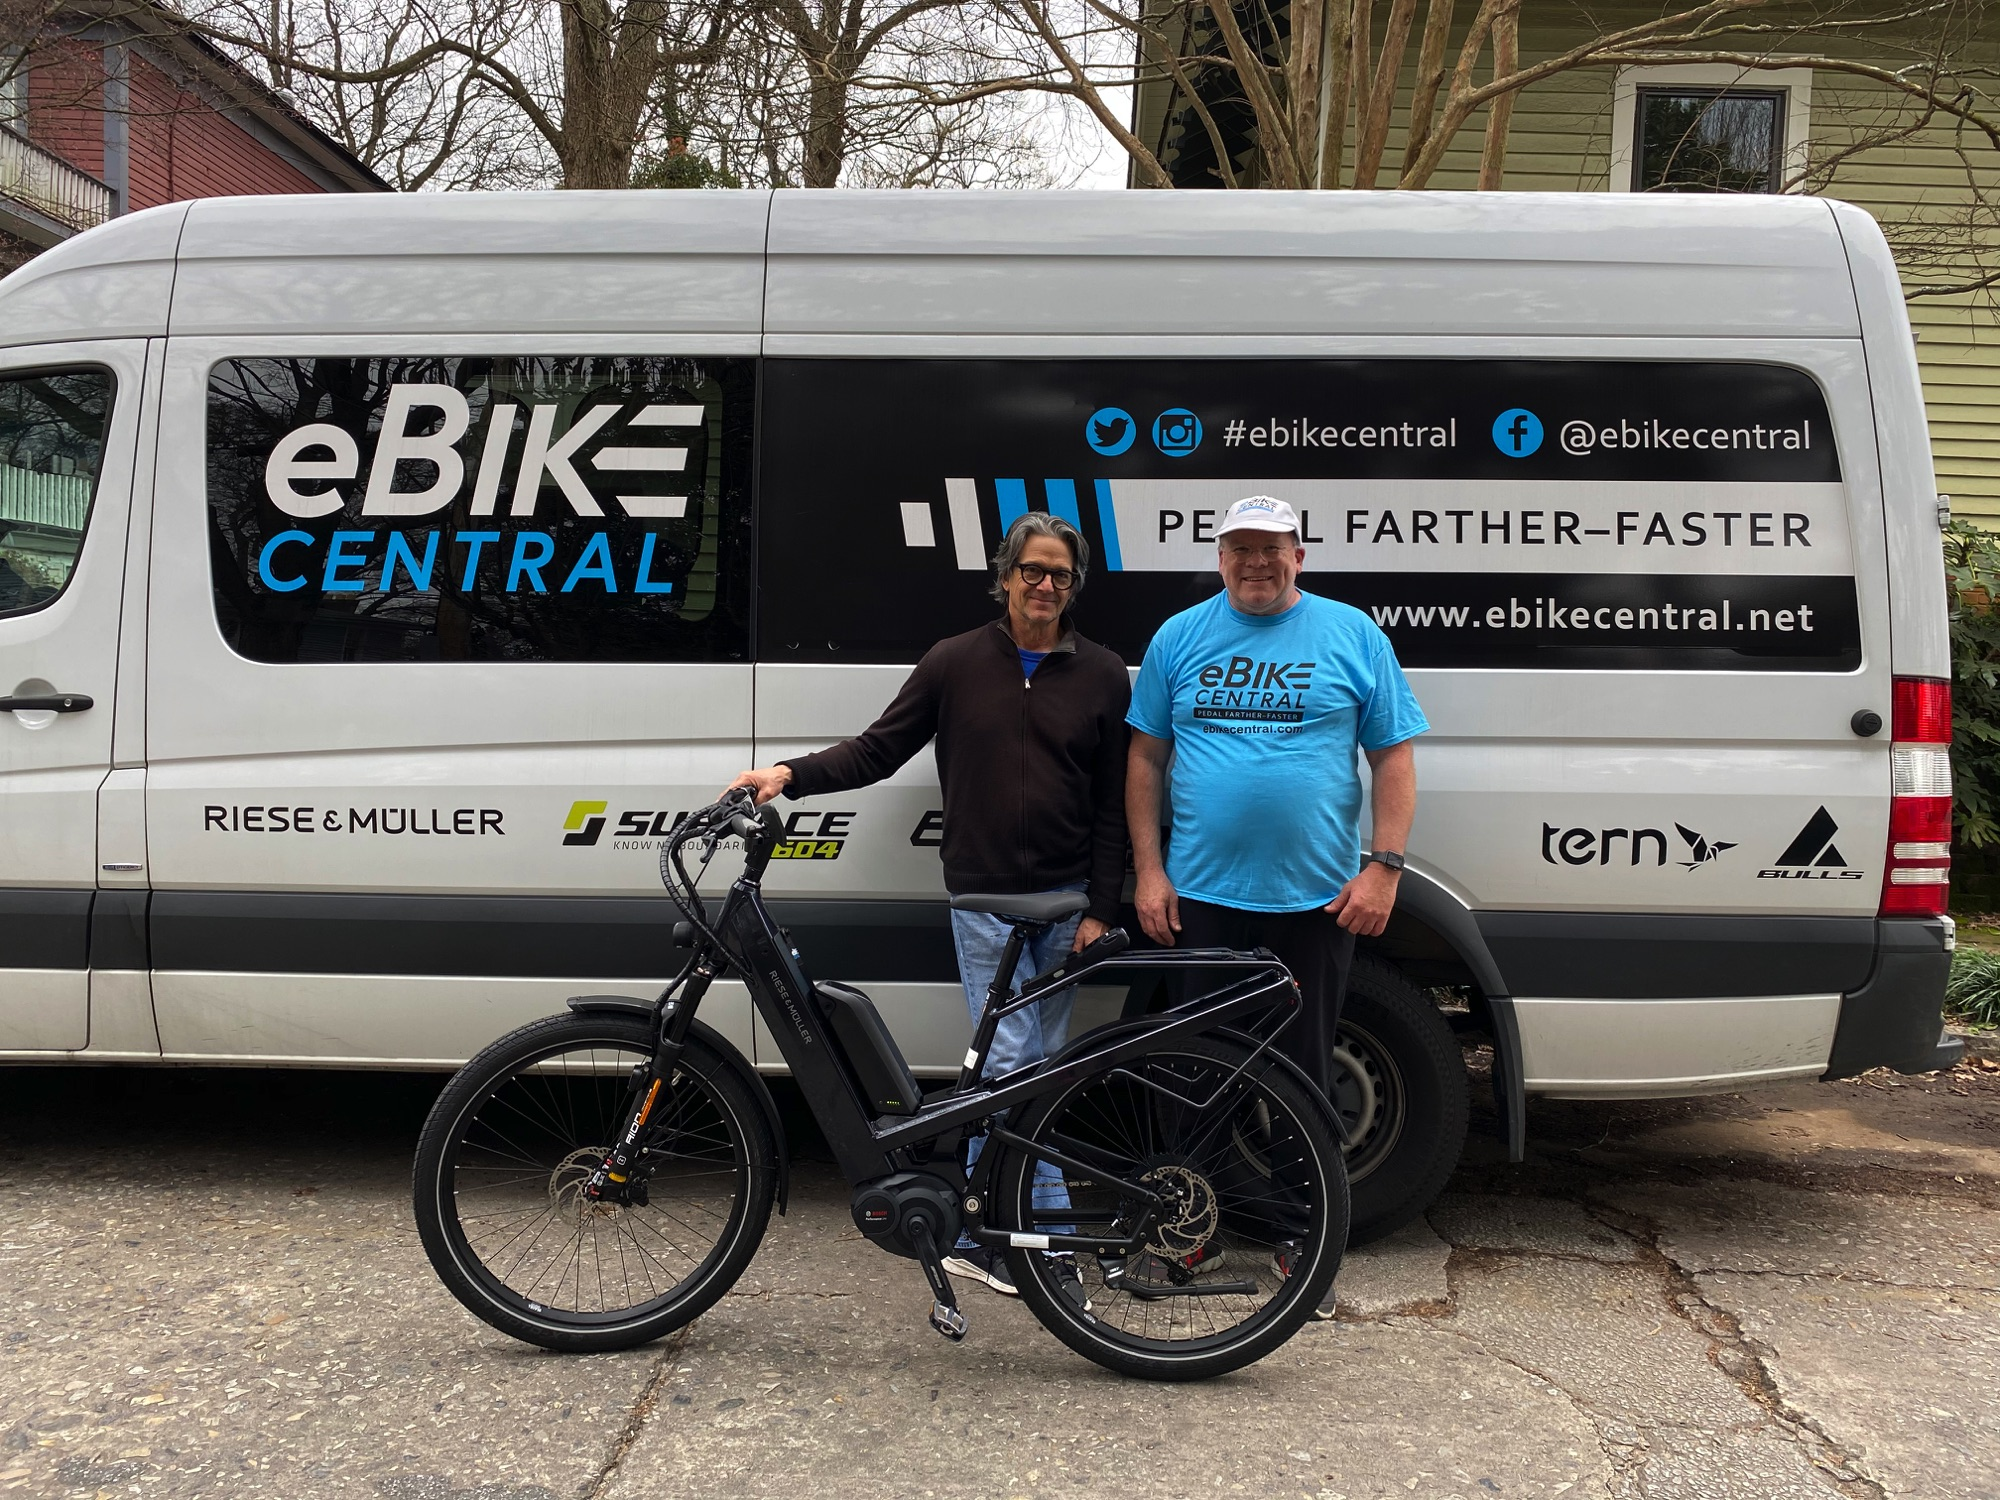 eBike Central in Atlanta for Riese & Muller Homage GT Touring HS eBike delivery